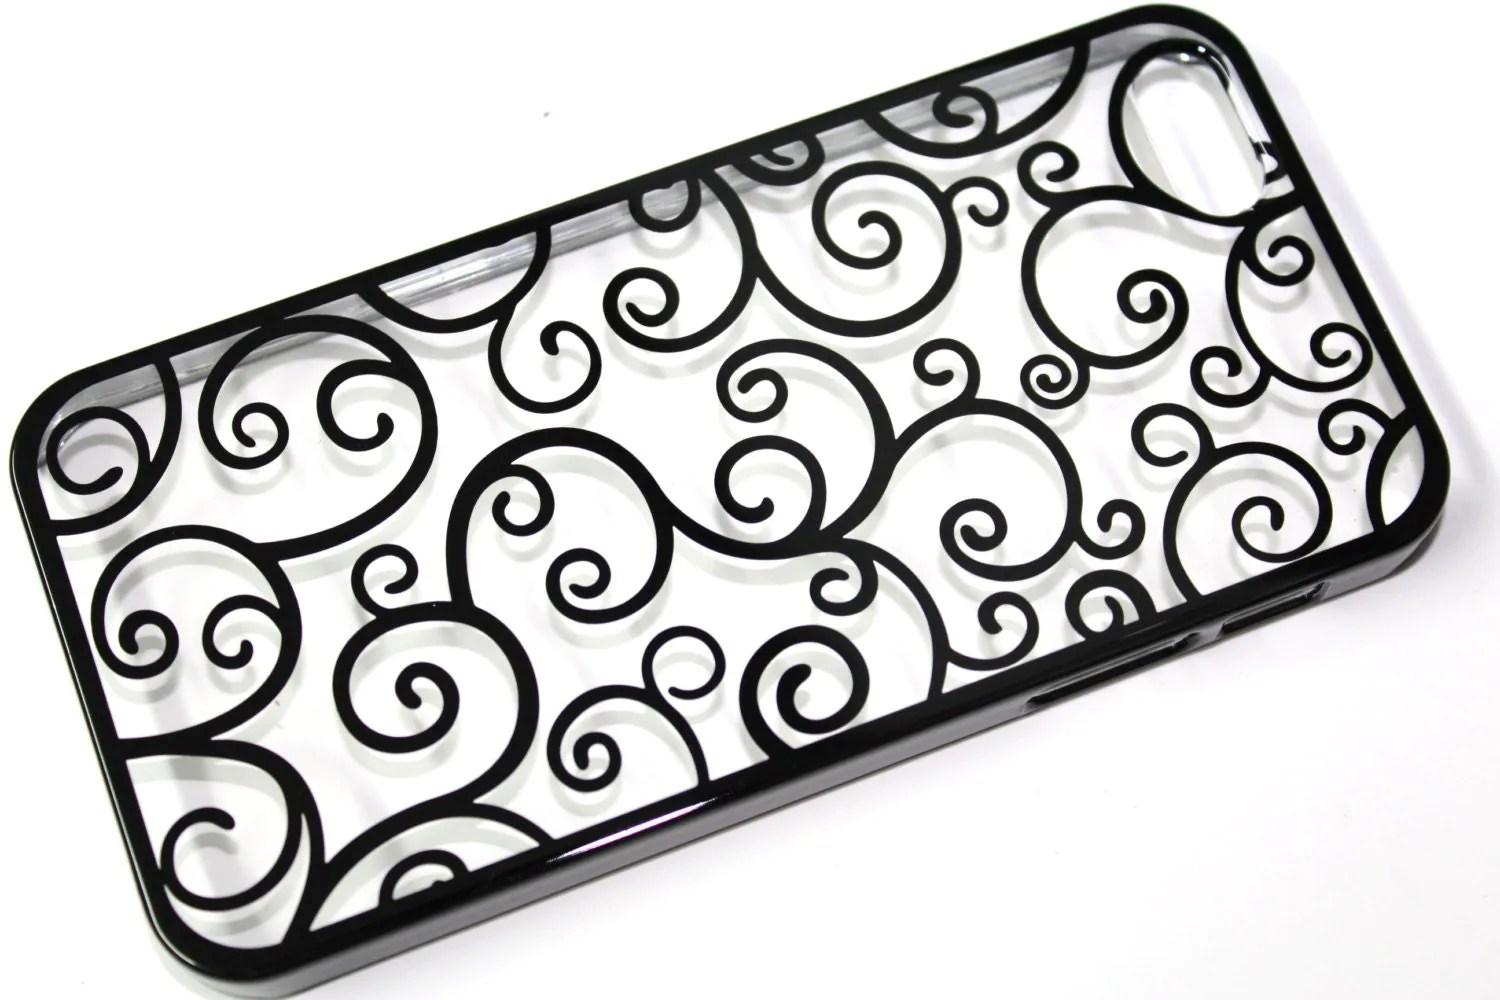 New Iphone 5 Case Transparent Cover With Black Floral Pattern